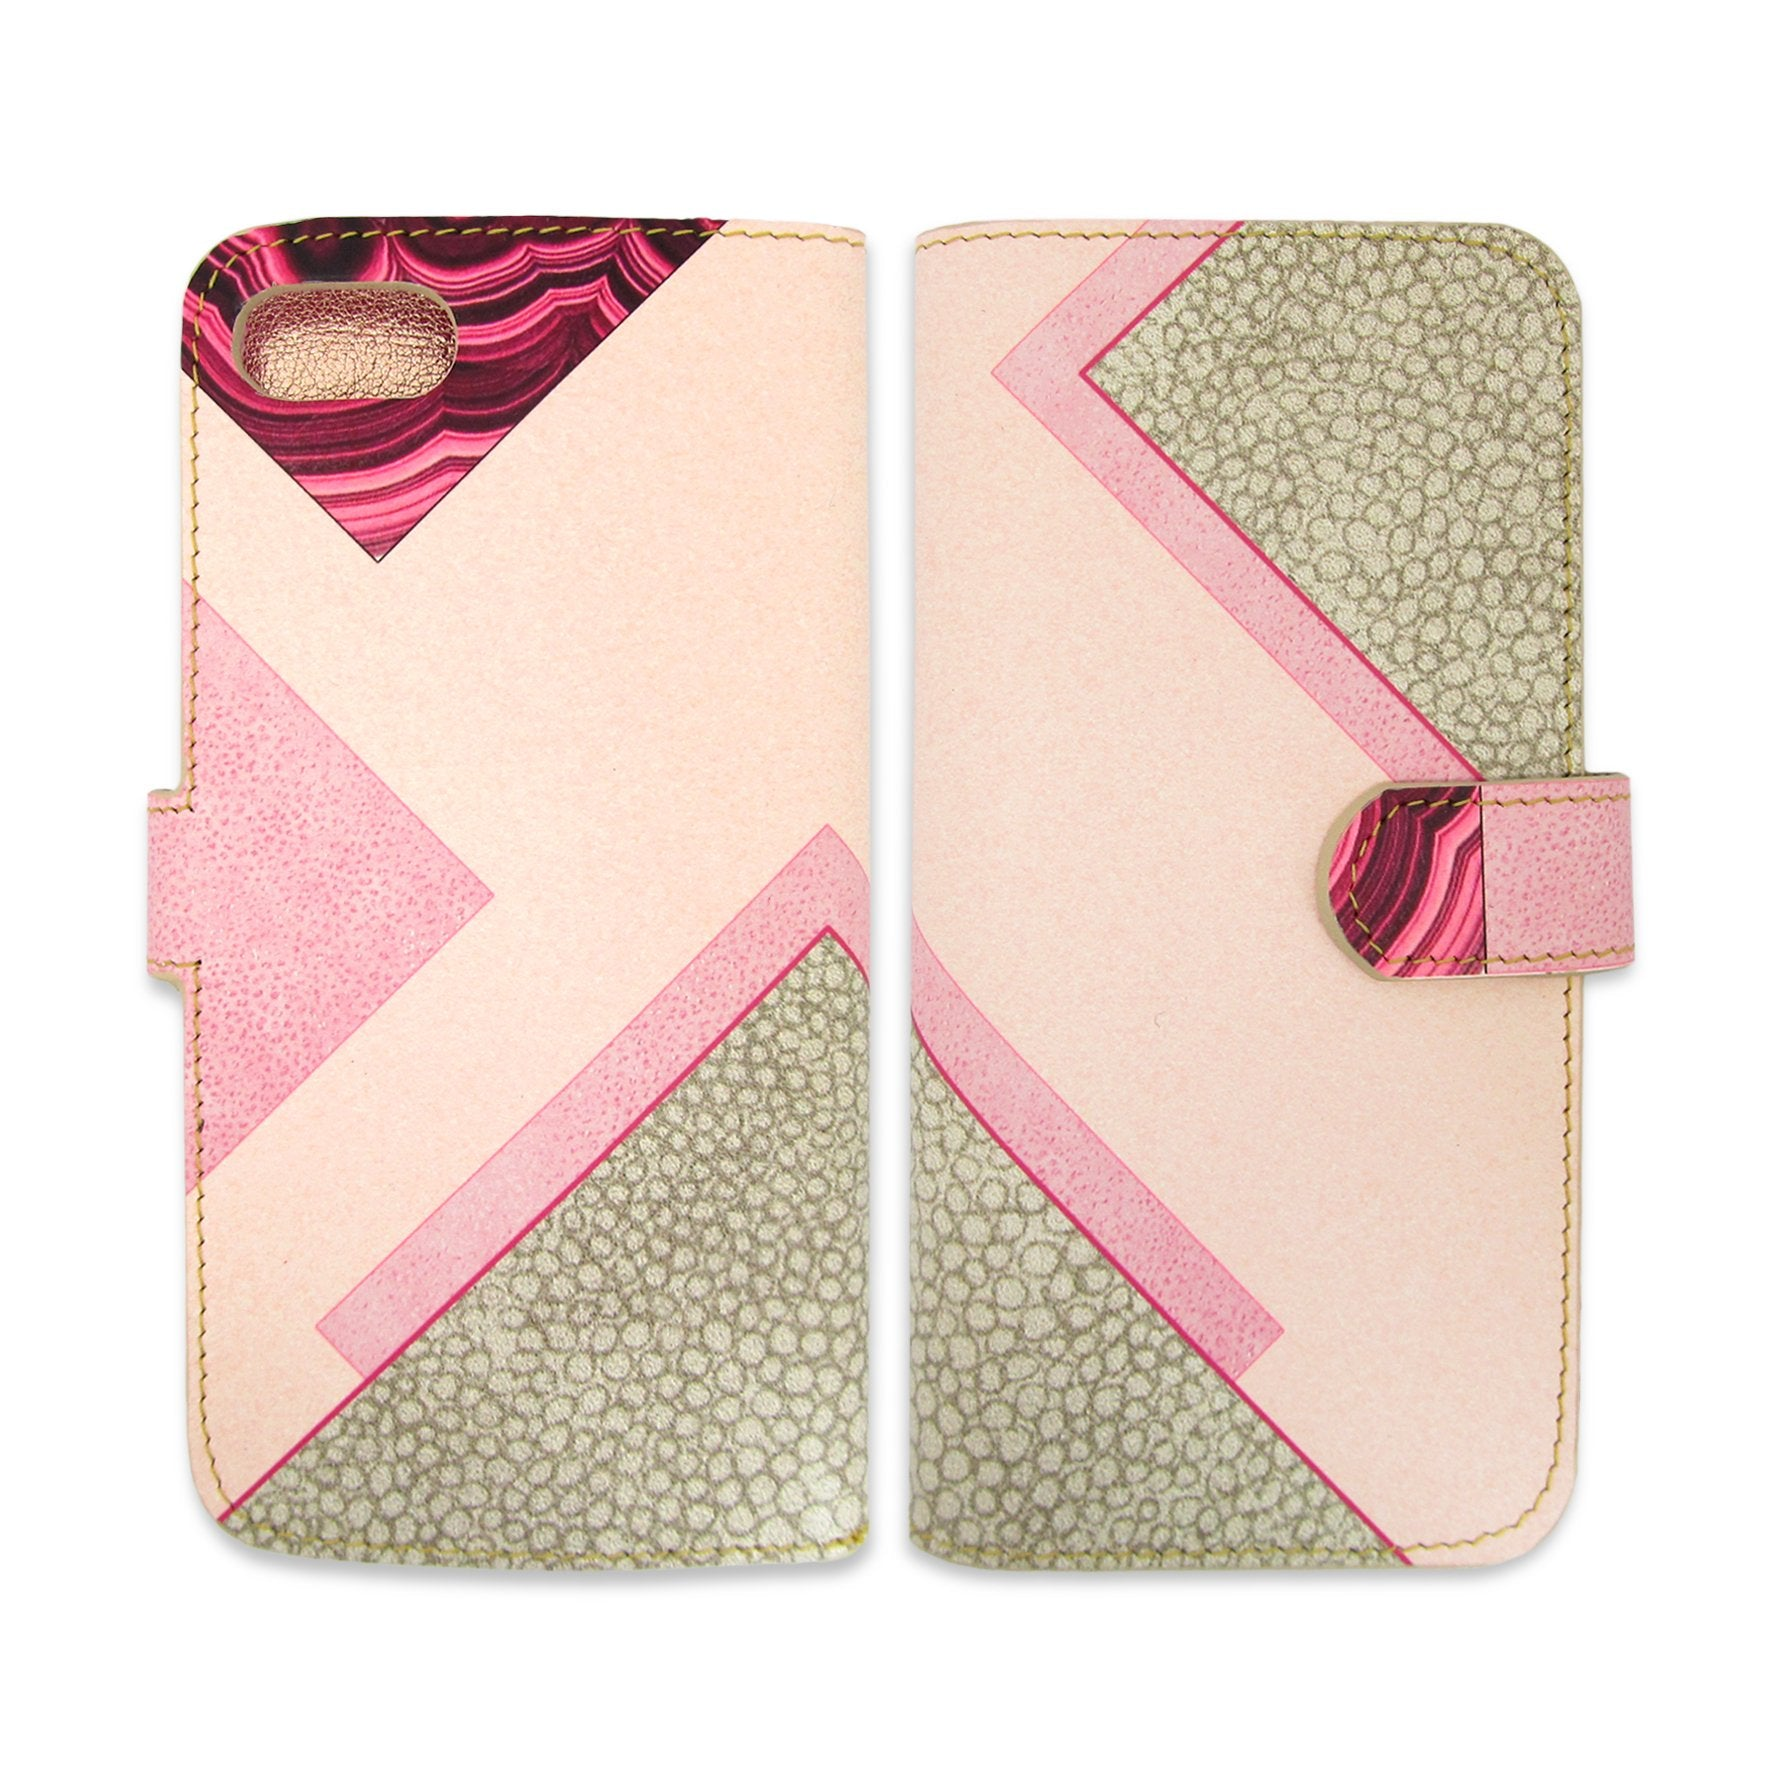 Geometric flip case - Woman's phone case - pink and gray phone case - marble effect - Leather Wallet Phone Case - Geometric printed phone wallet -